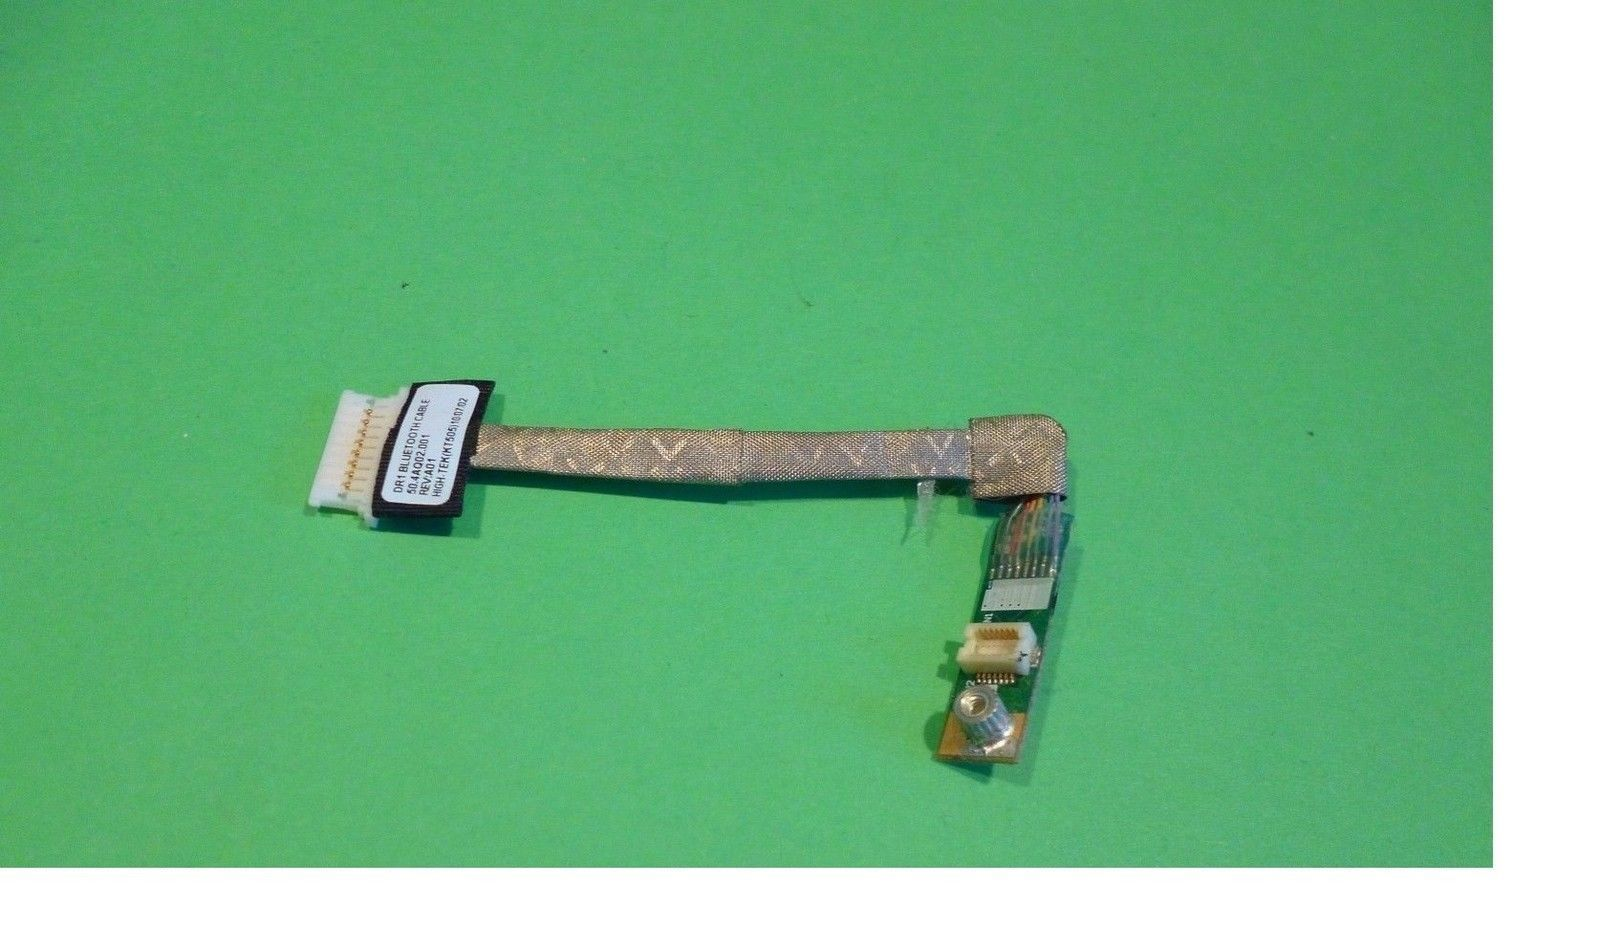 OEM DELL INSPIRON 1545 BLUETOOTH CABLE / CONNECTOR 50.4AQ02.001